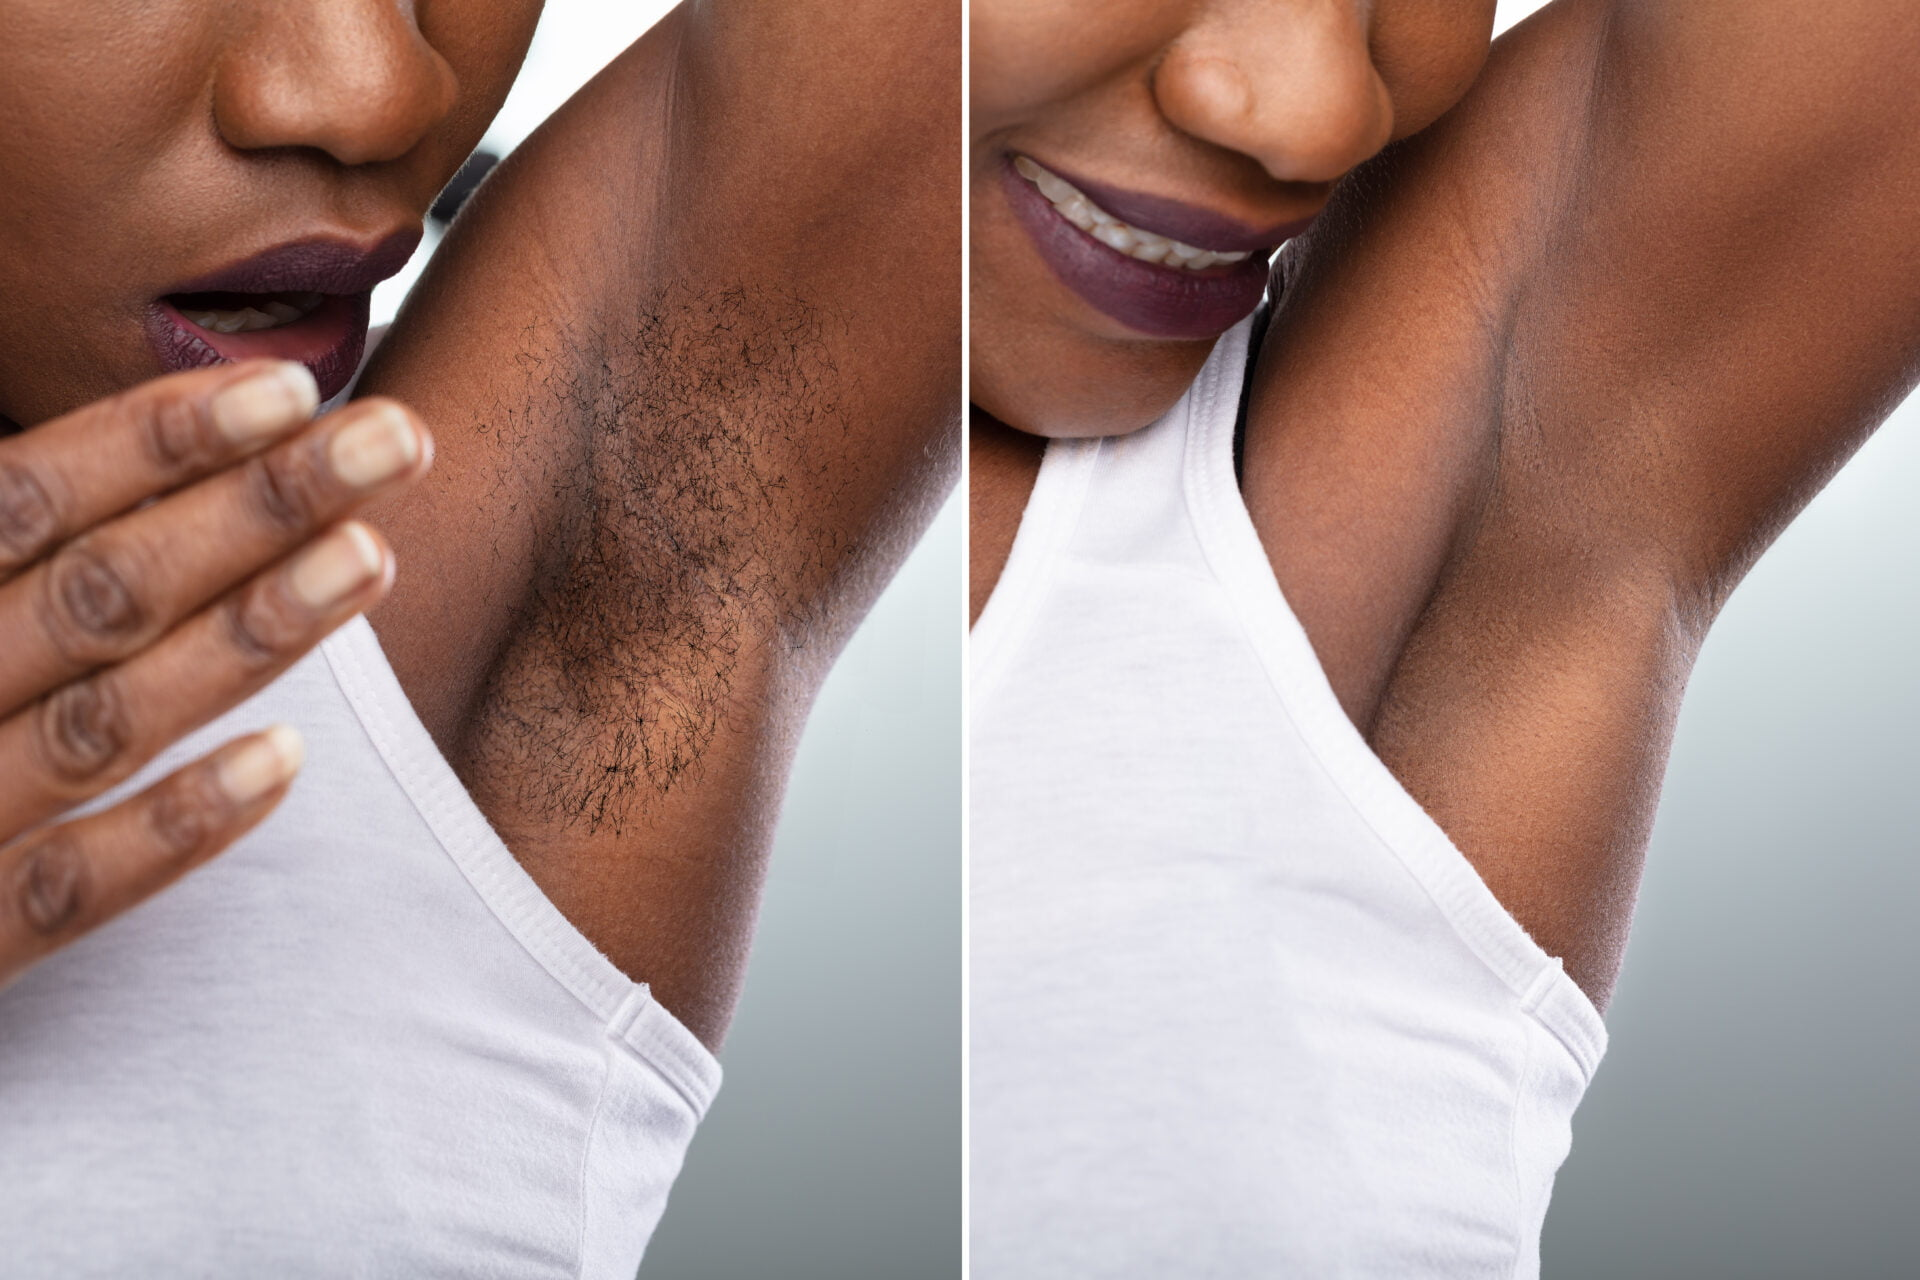 Before And After Concept Of Woman's Underarm Hair Removal